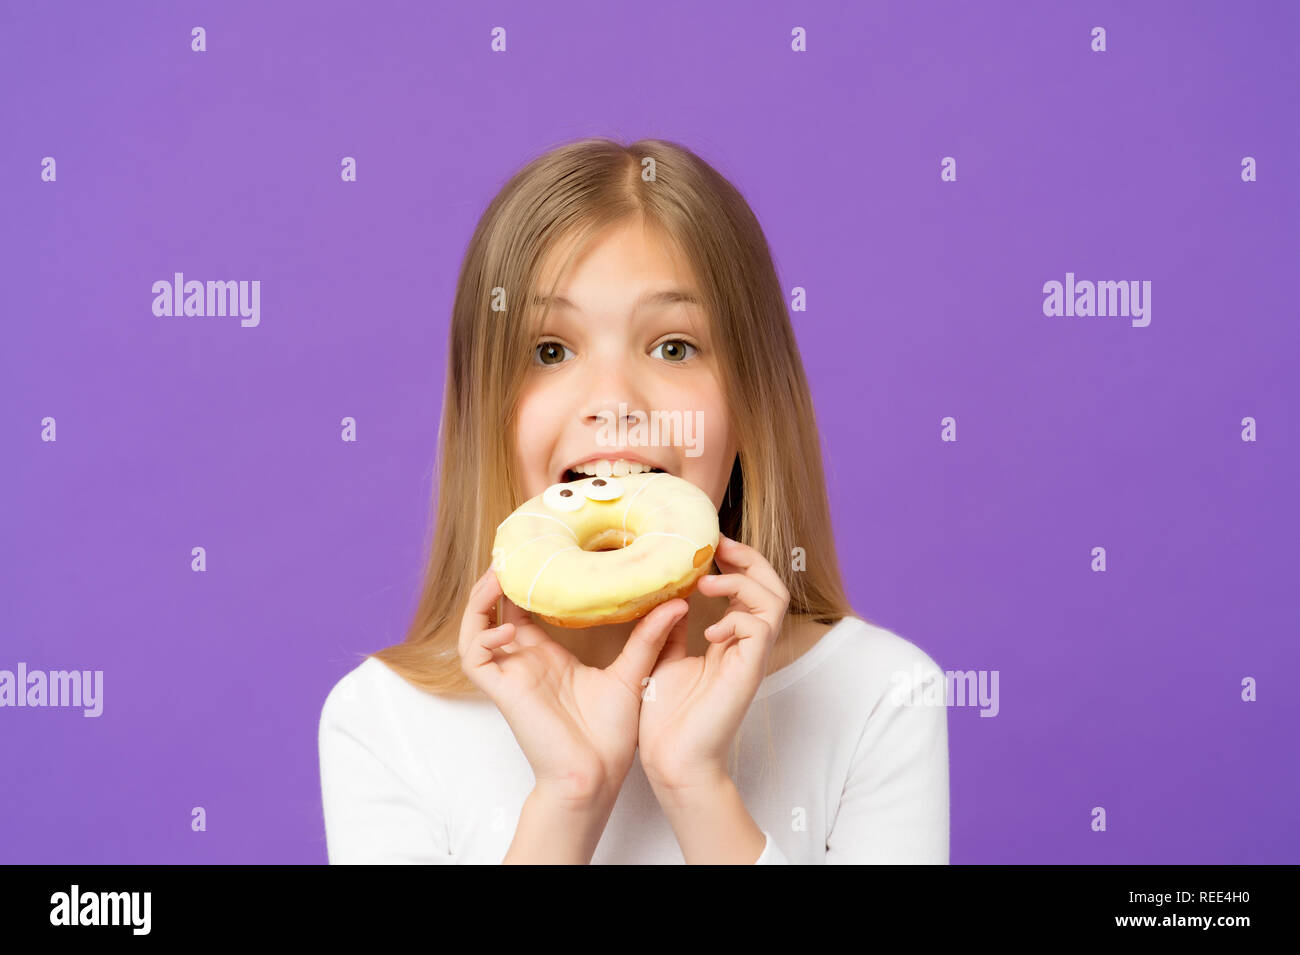 Sweetie beauty. Little girl eat donut on violet background. Child with glazed ring doughnut on purple background. Kid with junk food. Food and dessert. Childhood and childcare, copy space. - Stock Image